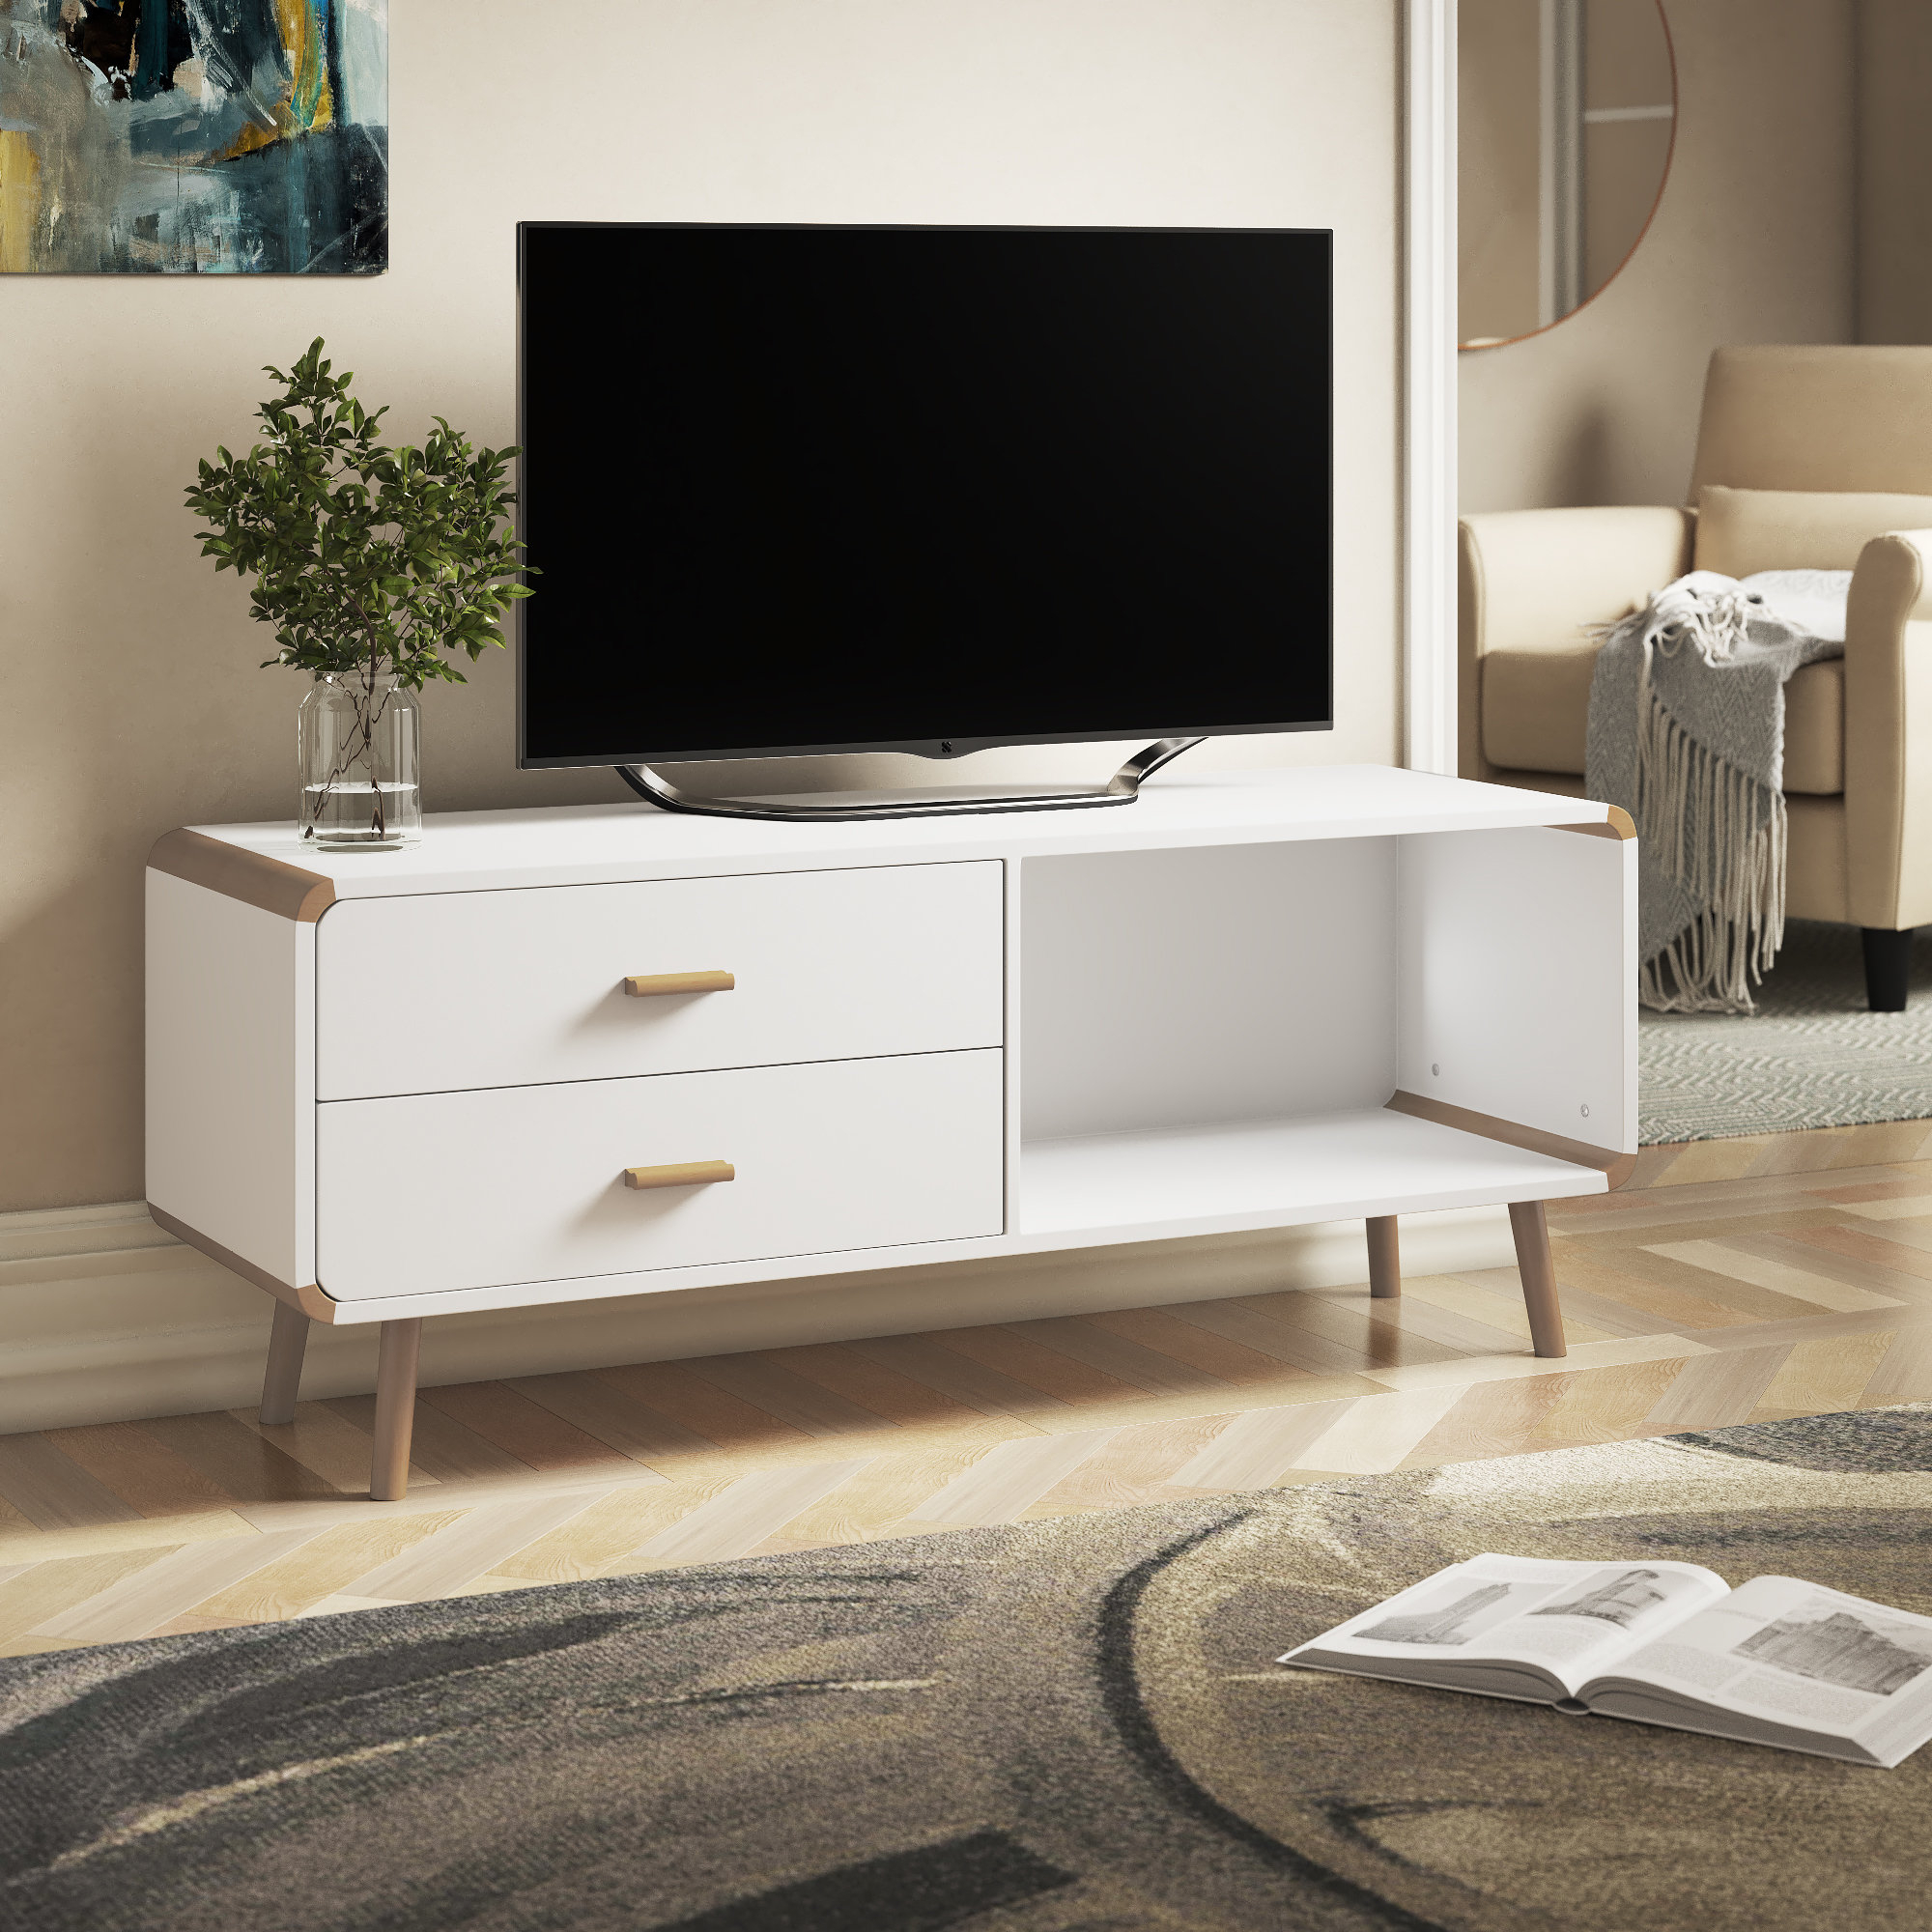 Fashionable Relaxdays Long Storage Drawers Tv Stand (Gallery 8 of 20)